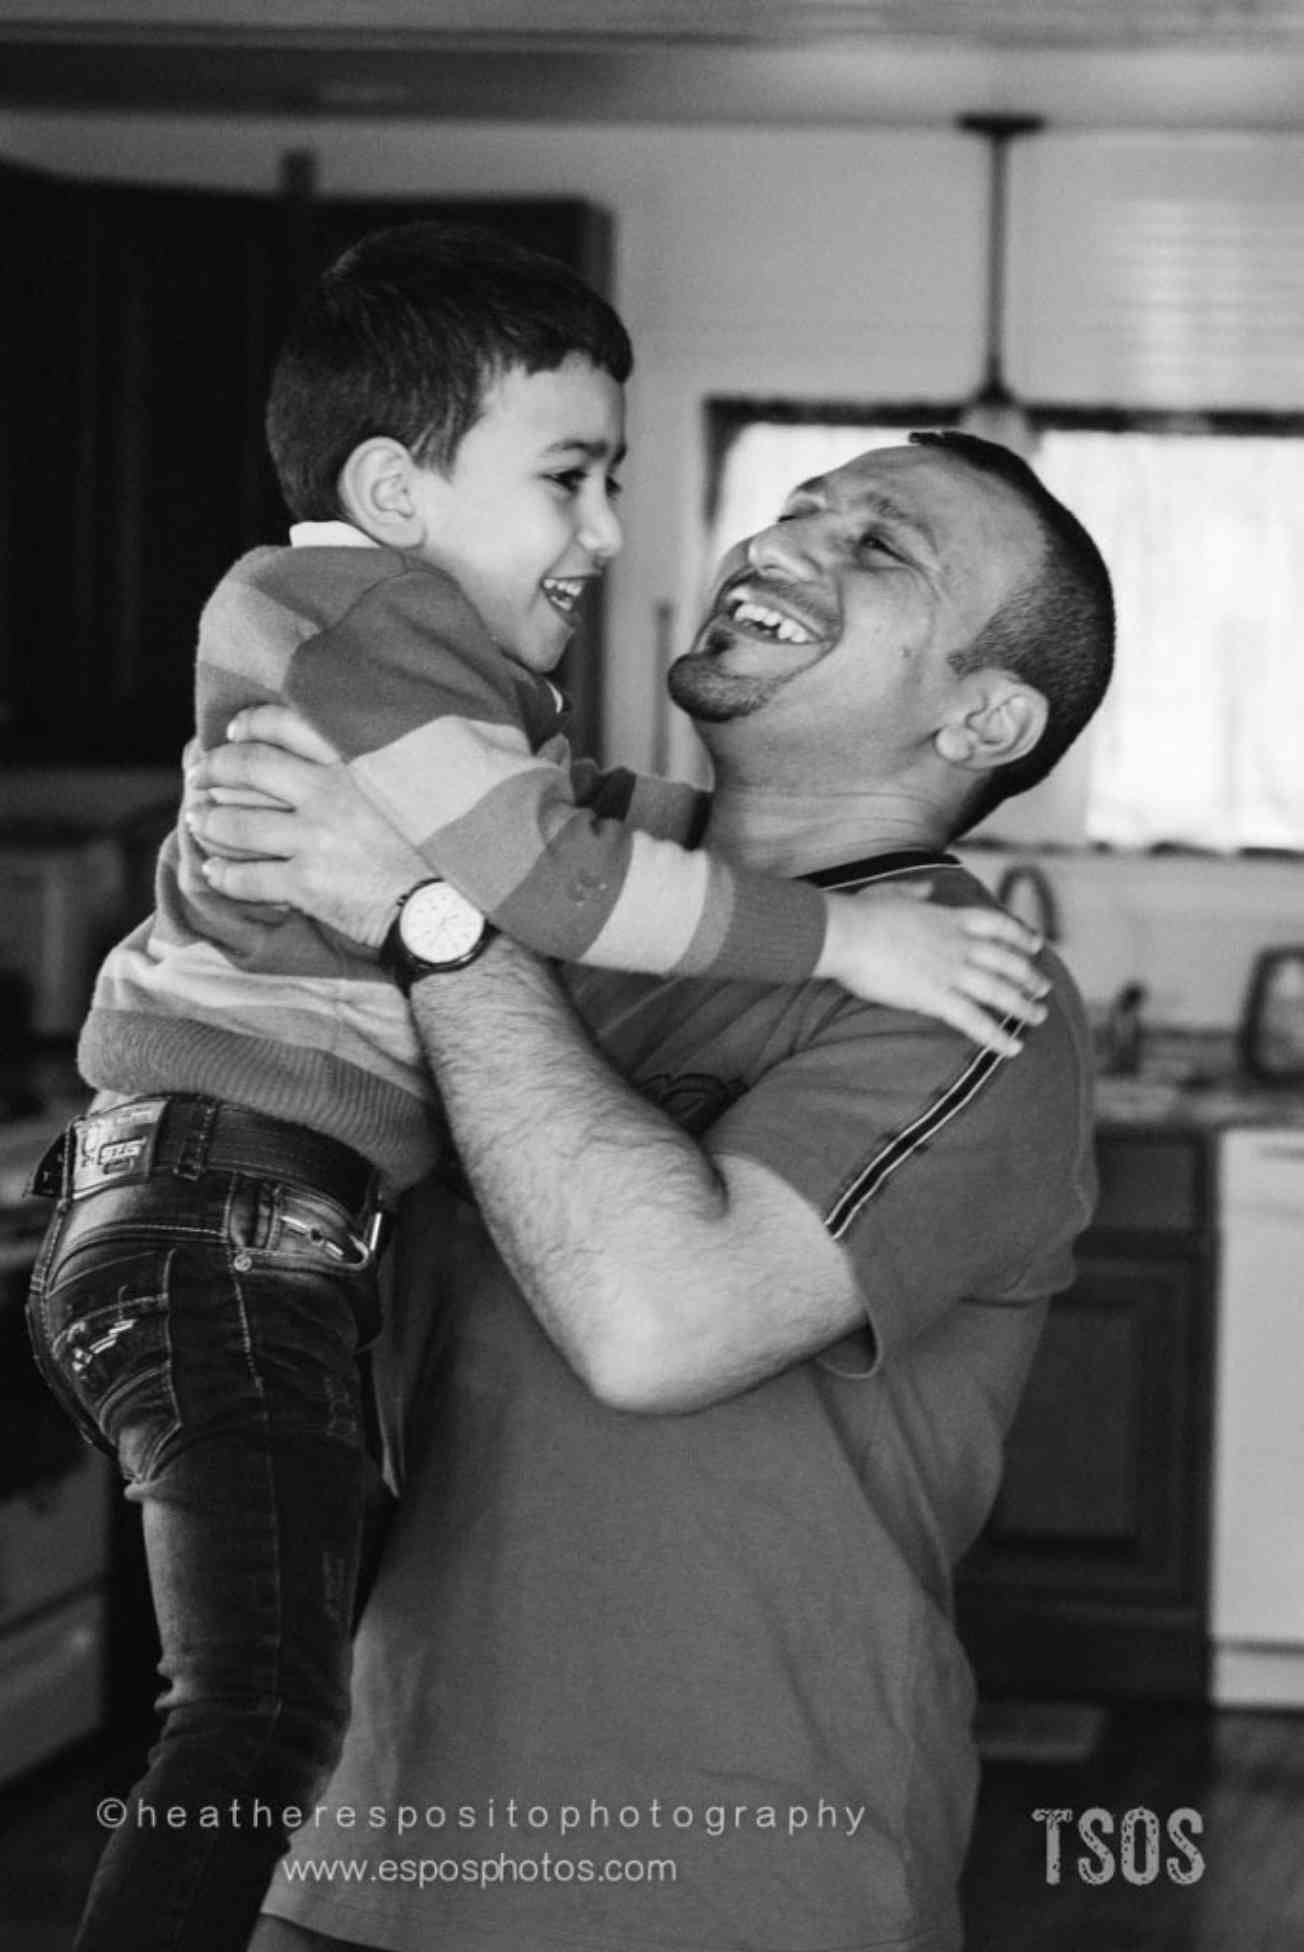 Mohammad and his father